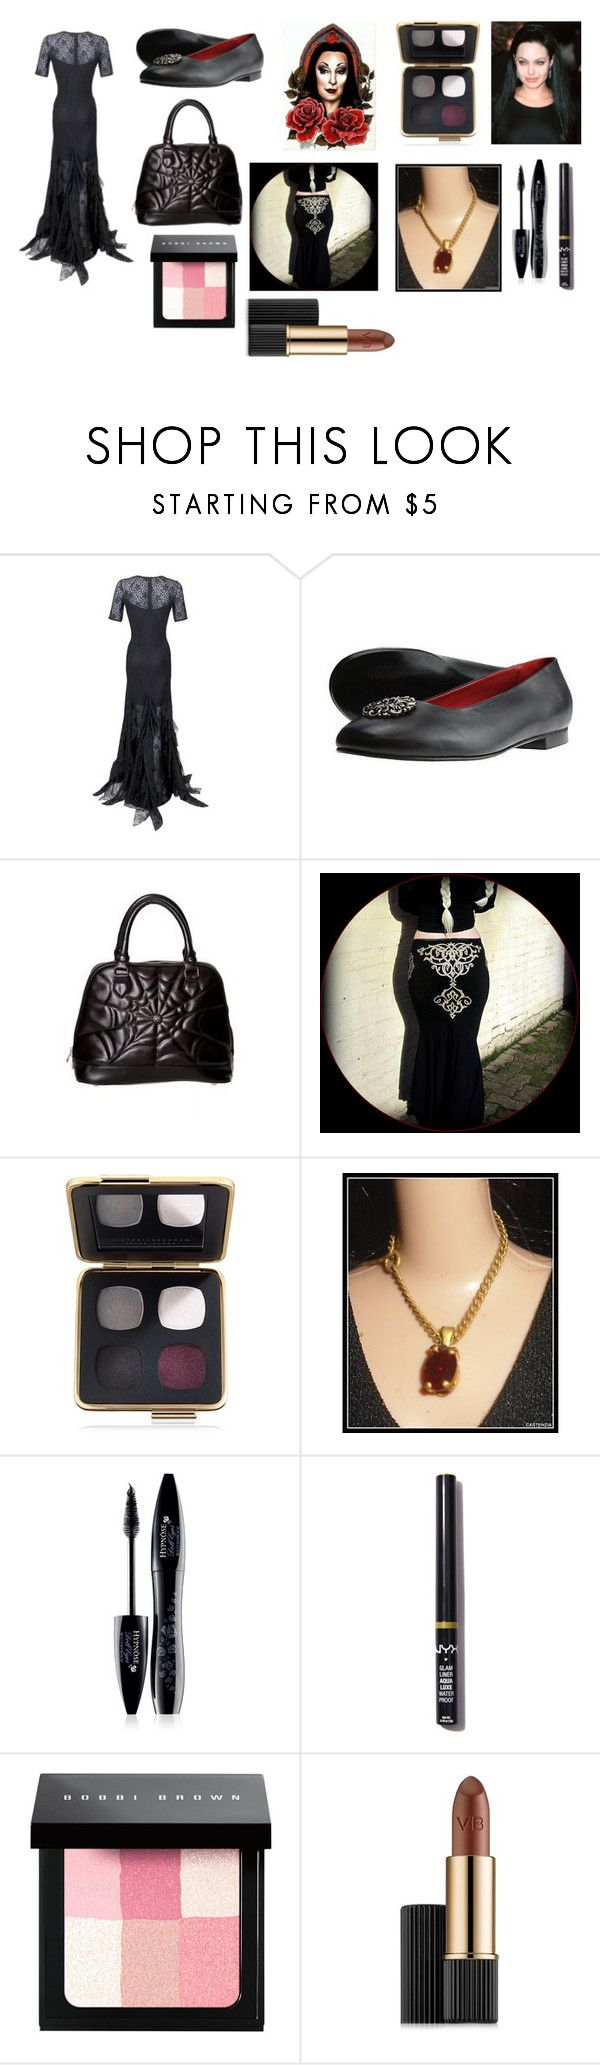 """For Scarlett (friend) - Scarlett's ideal wardrobe by me: Mortician dress!"" by sarah-m-smith ❤ liked on Polyvore featuring Nina Ricci, Estée Lauder, ANGELINA, Lancôme, NYX and Bobbi Brown Cosmetics"